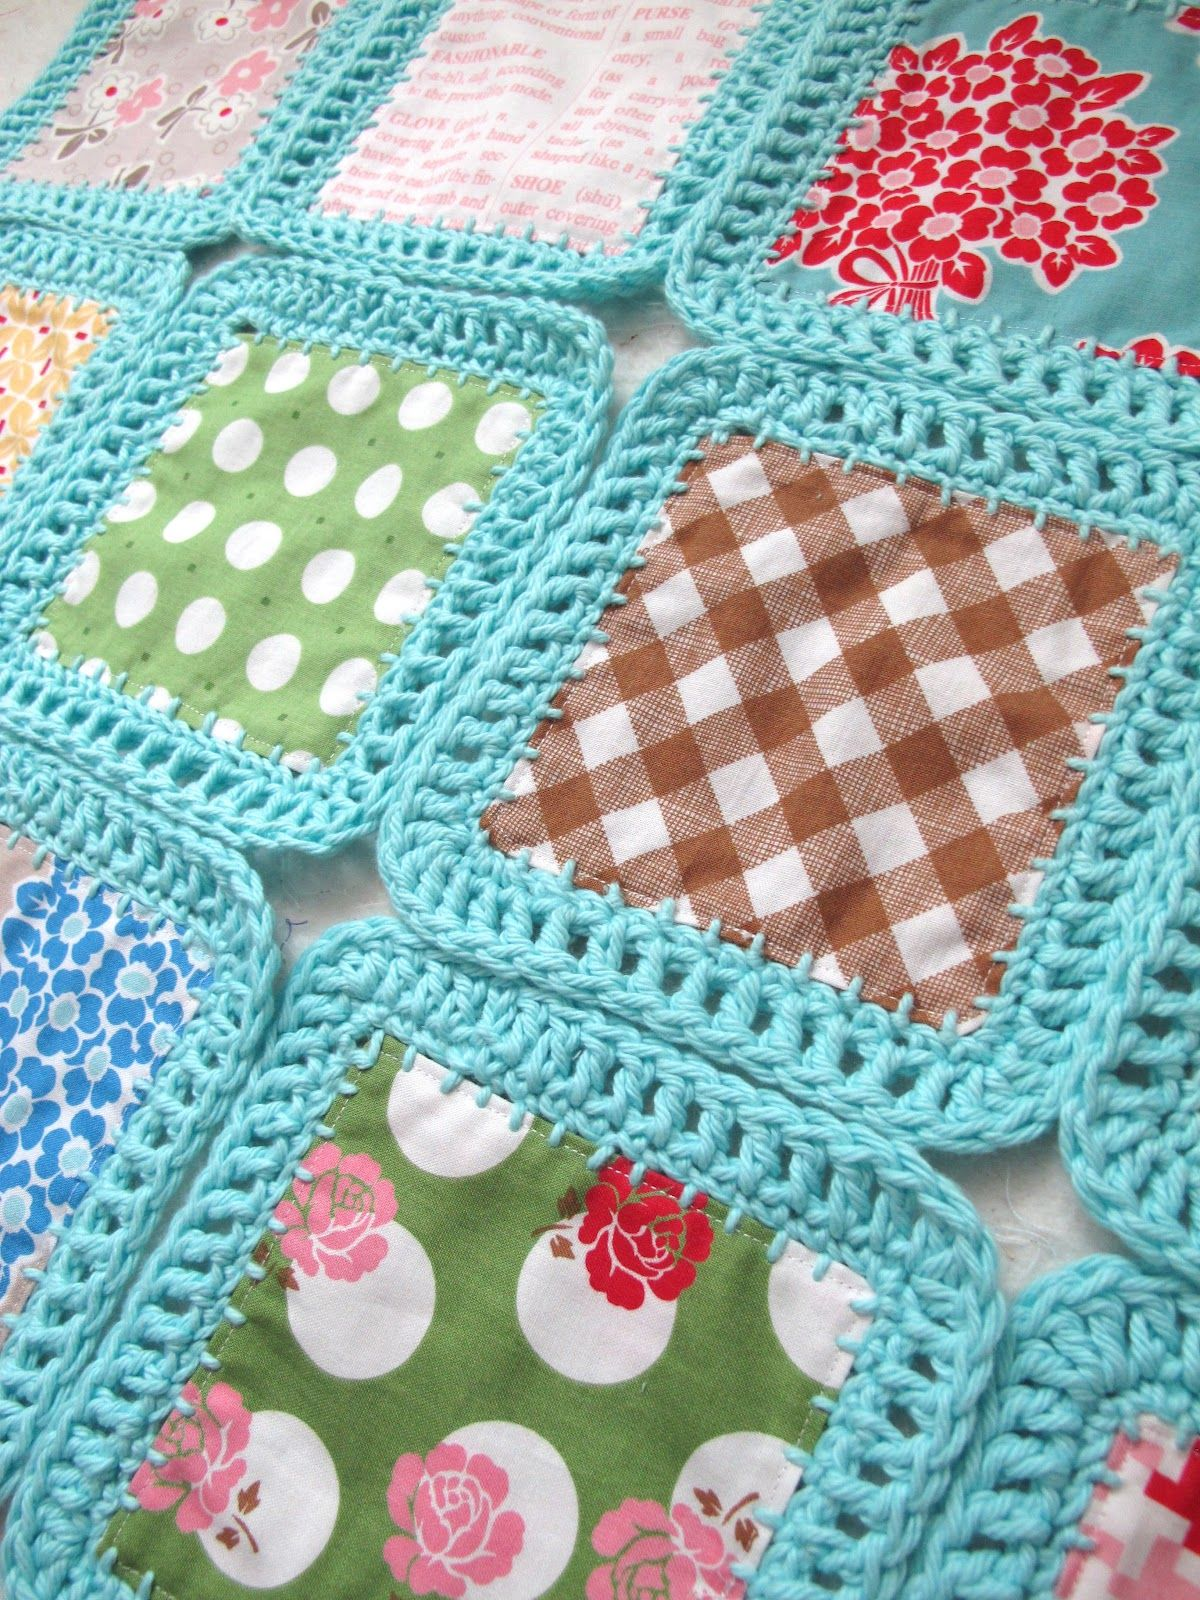 Two worlds colliding--quilting and crochet!  I've got to try this.